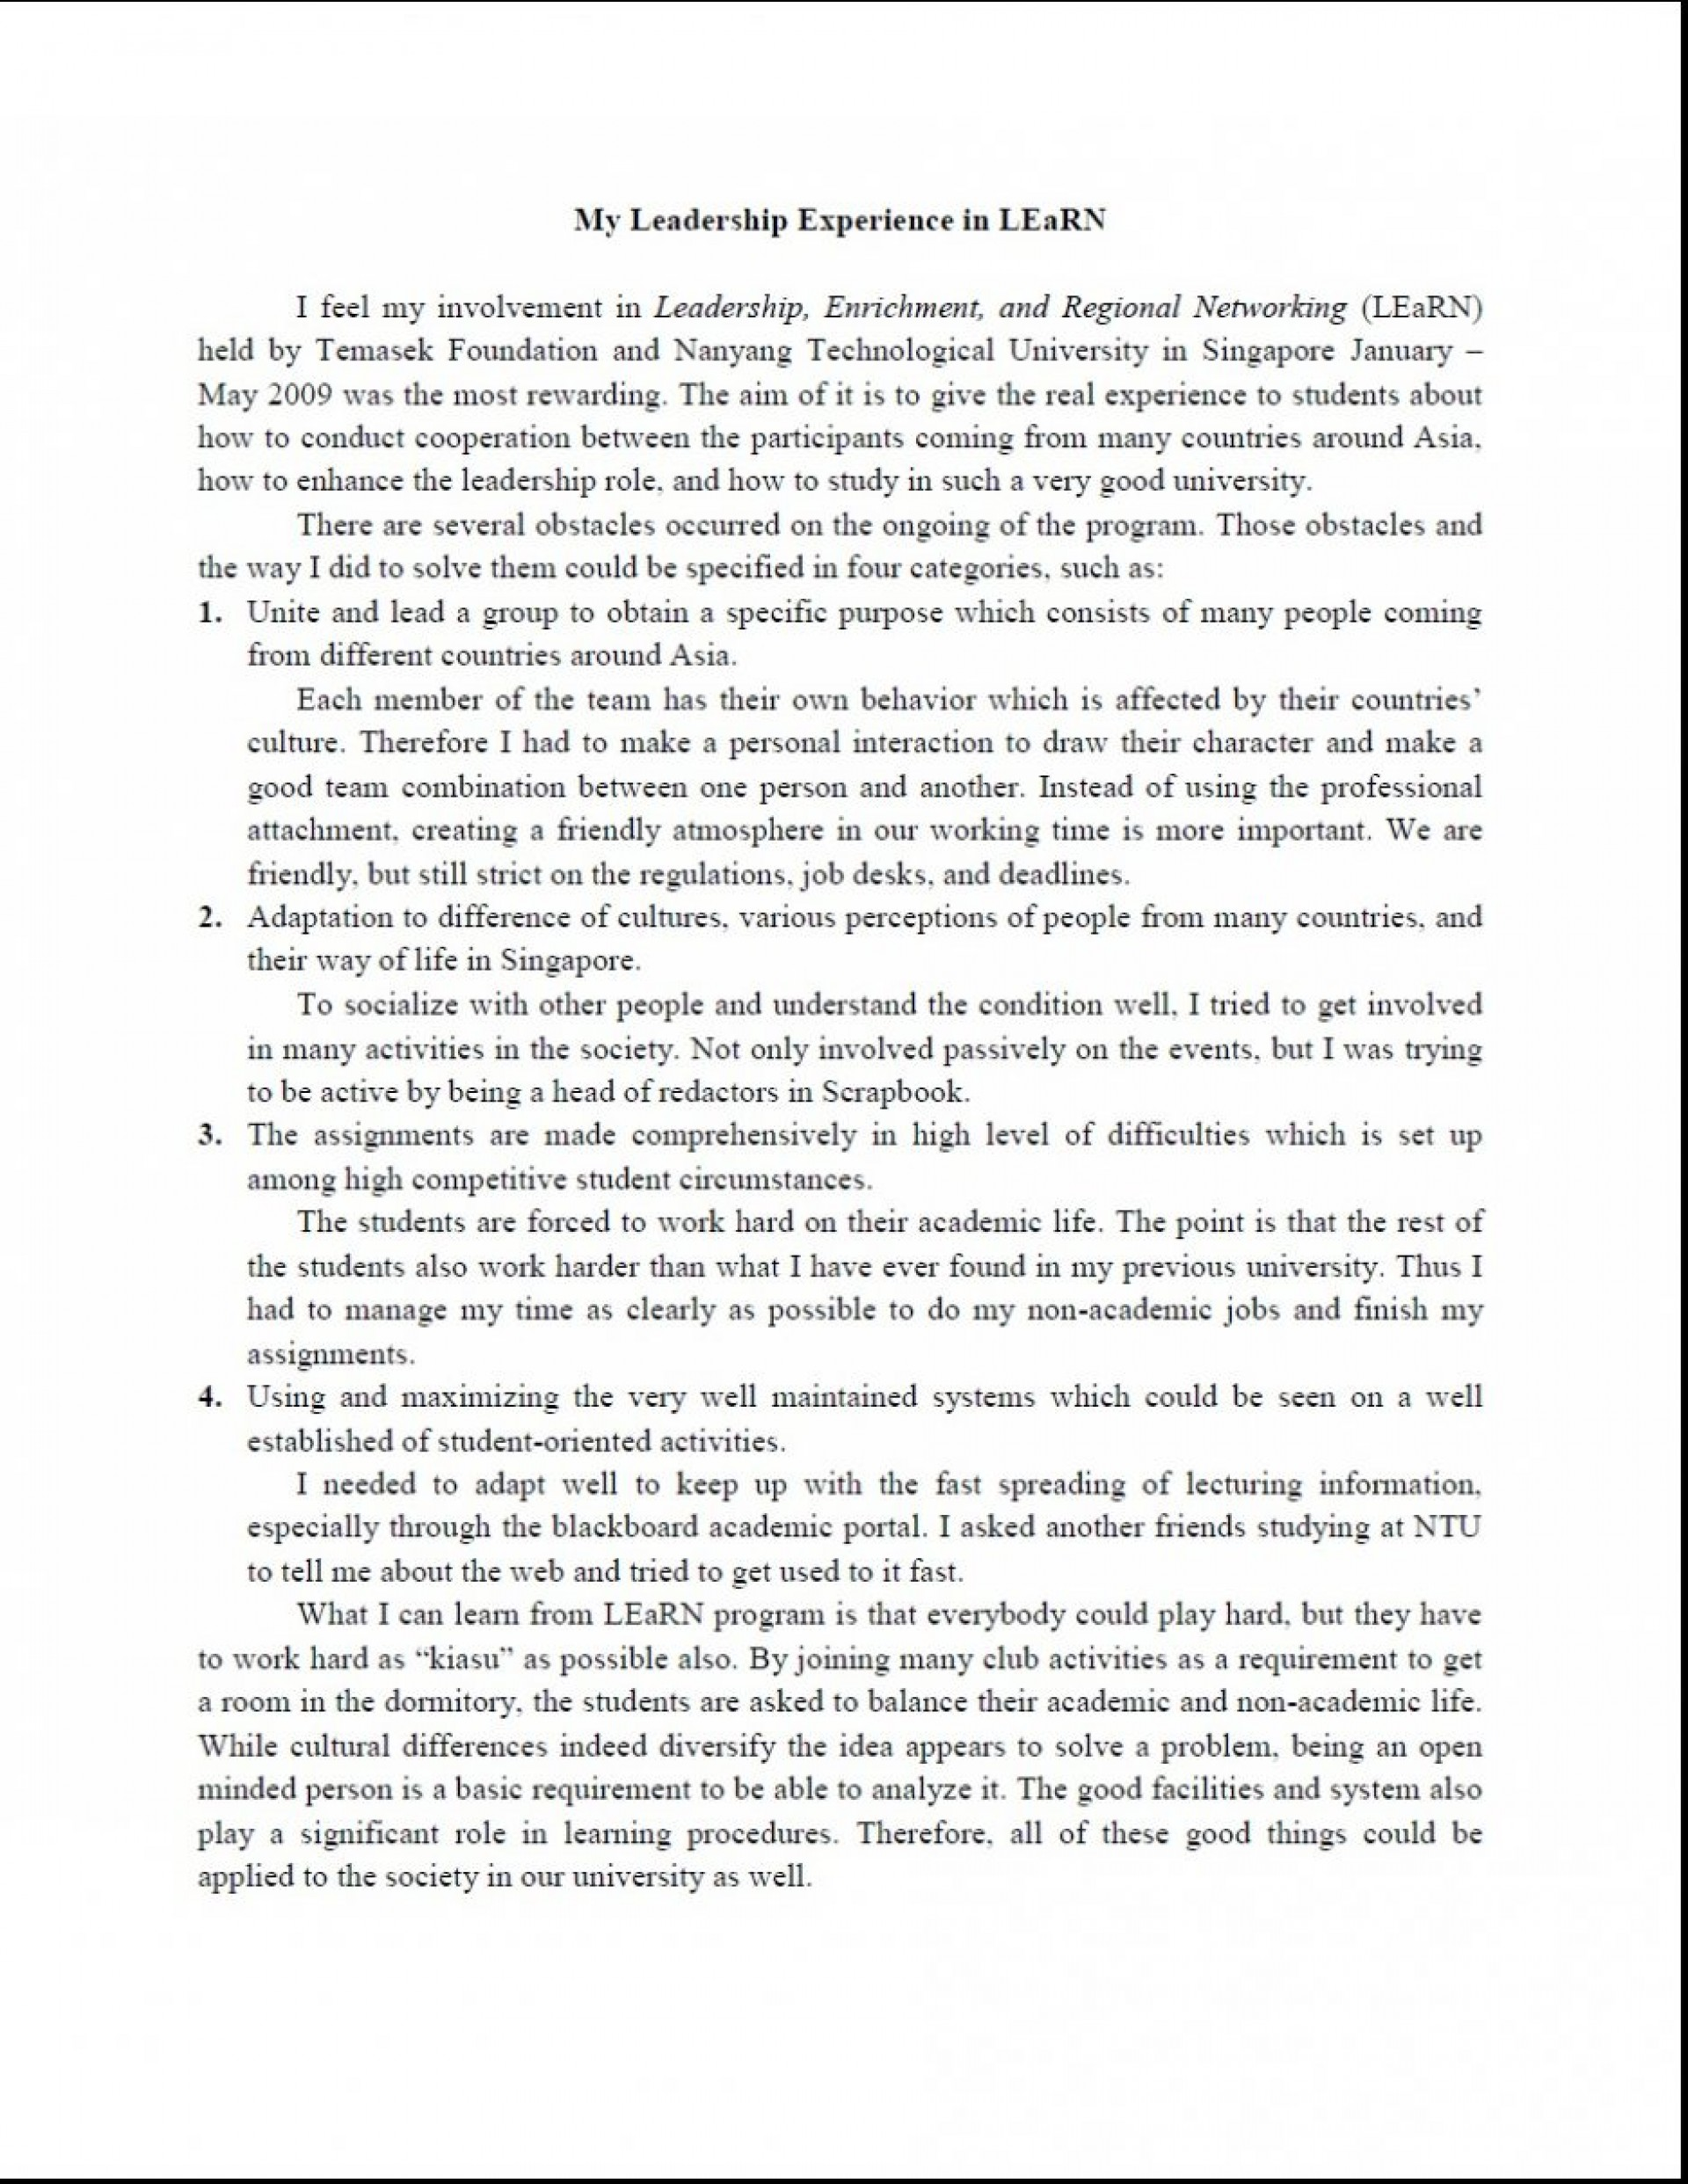 007 Great Leadership Essays Essay On Characteristics Of Good Leader Pdf 936x1211 Example What Awesome Makes A Successful 1920